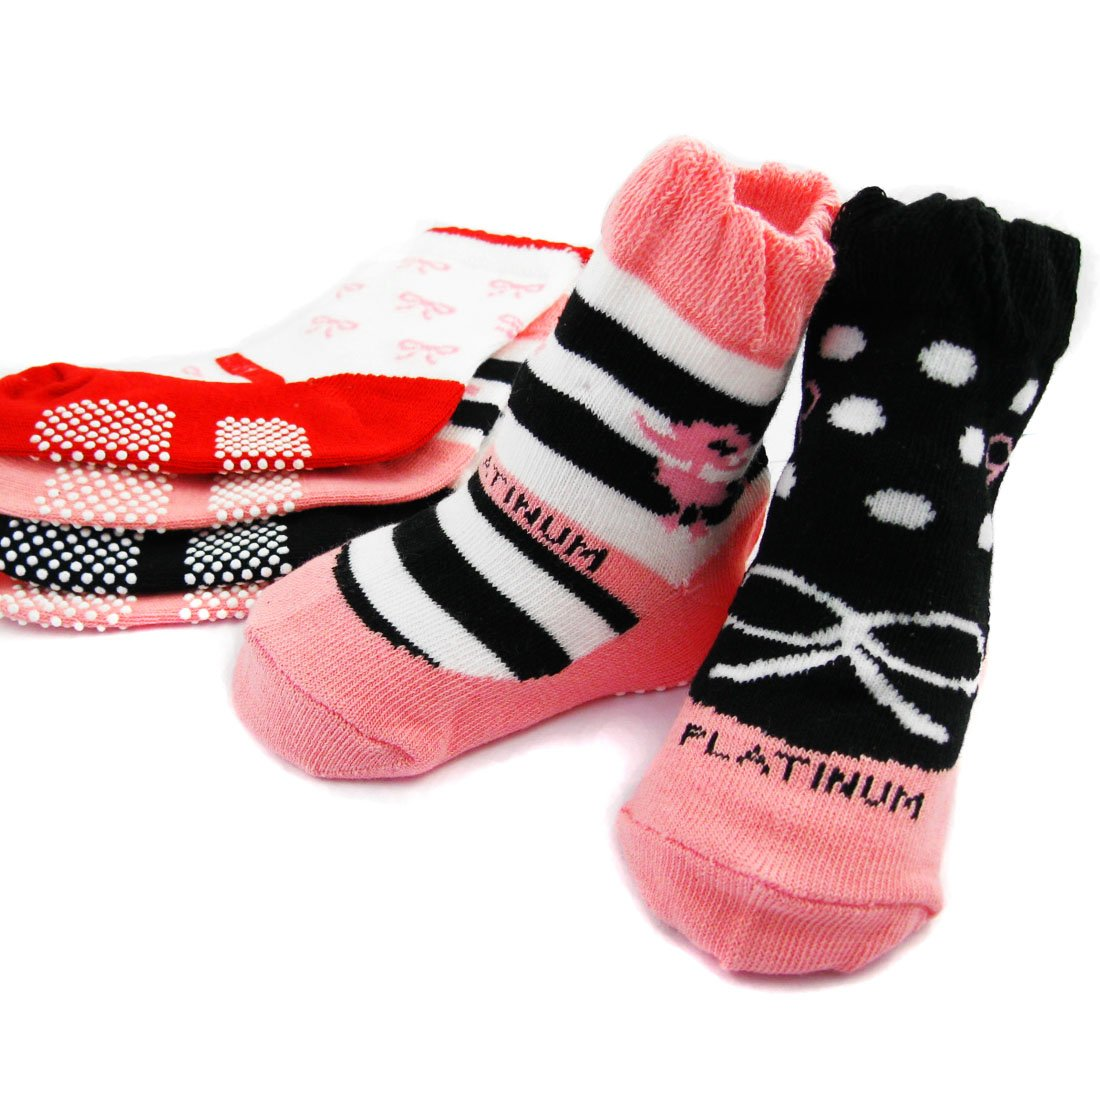 KF Baby Non-Skid Baby Girl Shoe Socks, 5 pairs